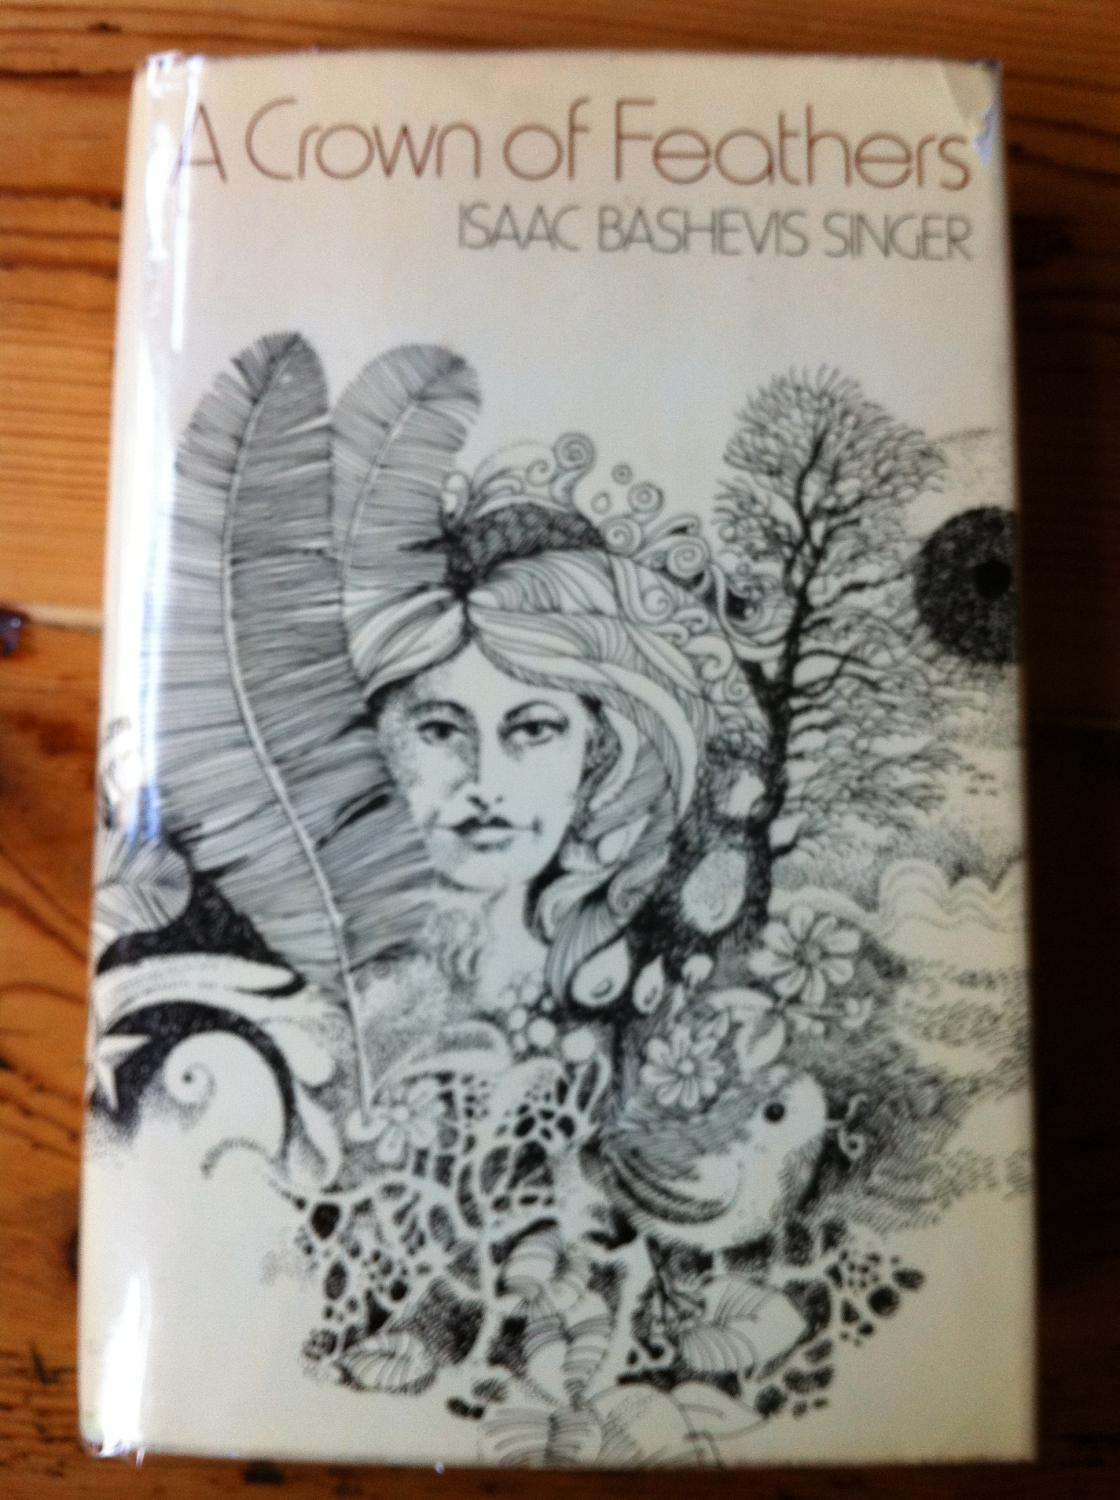 A Crown of Feathers Isaac Bashevis singer